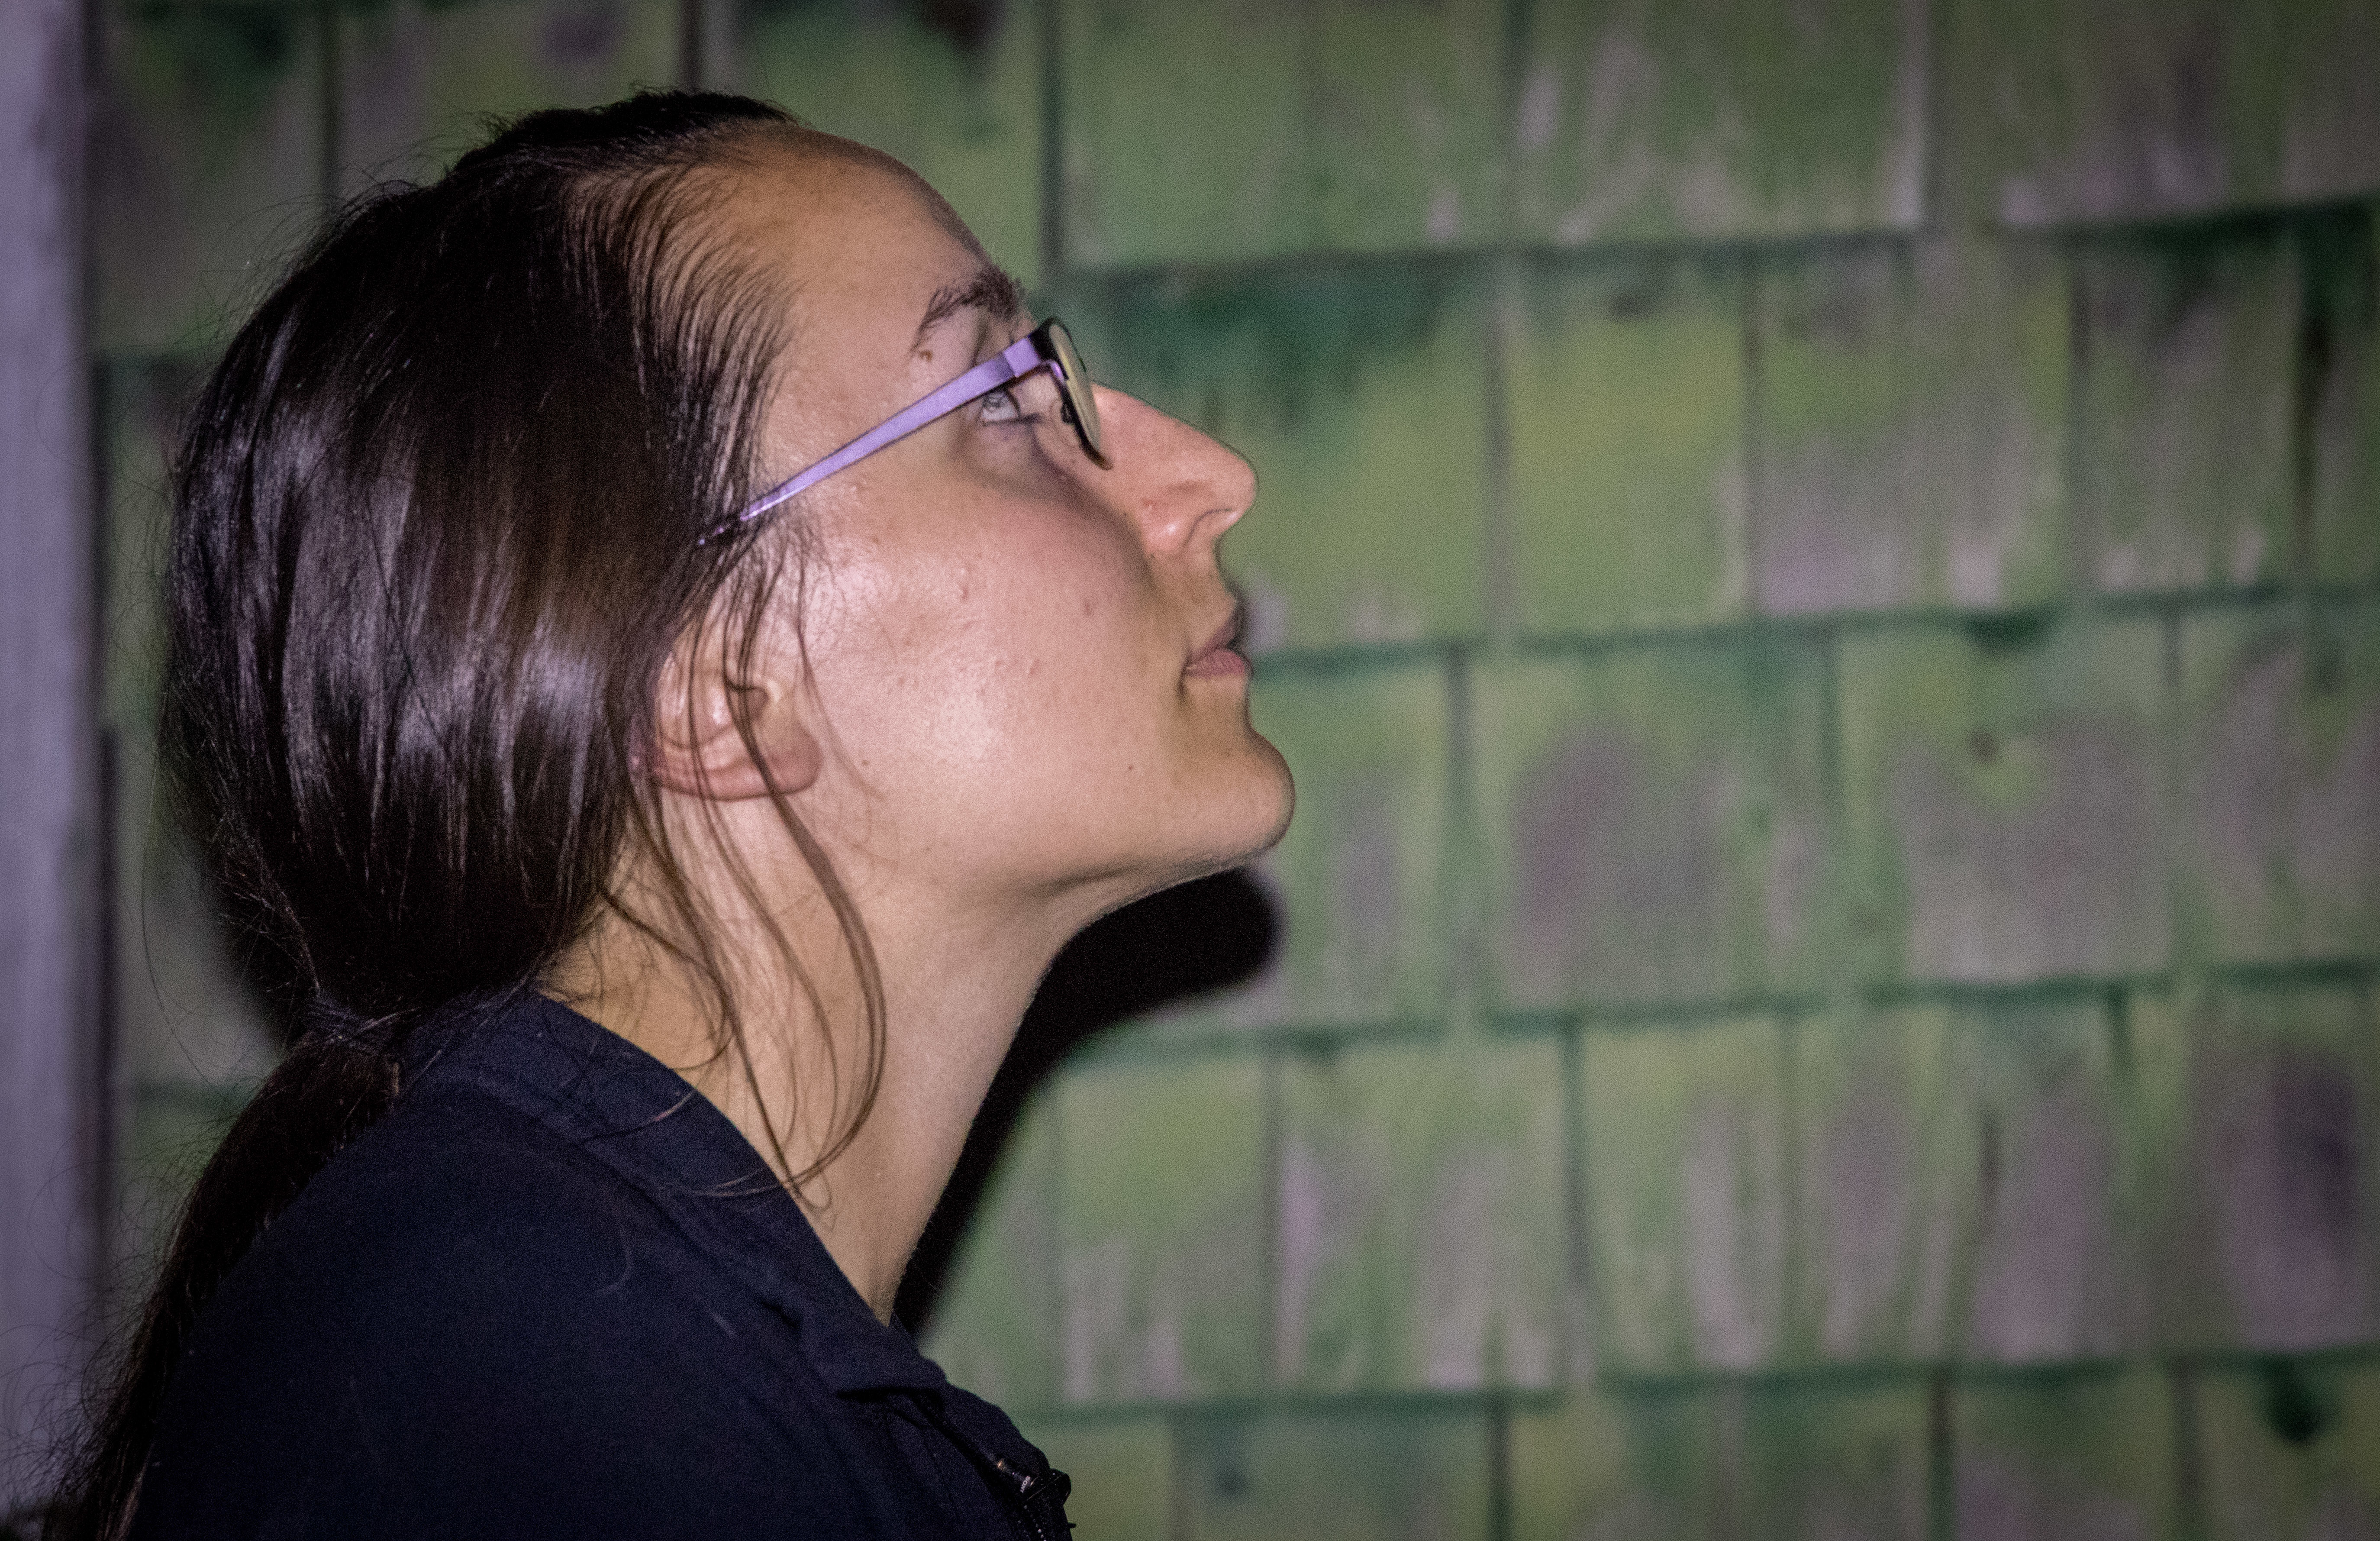 Biologist Lori Phinney looks for bats outside the building. (Steve Berry/CBC)